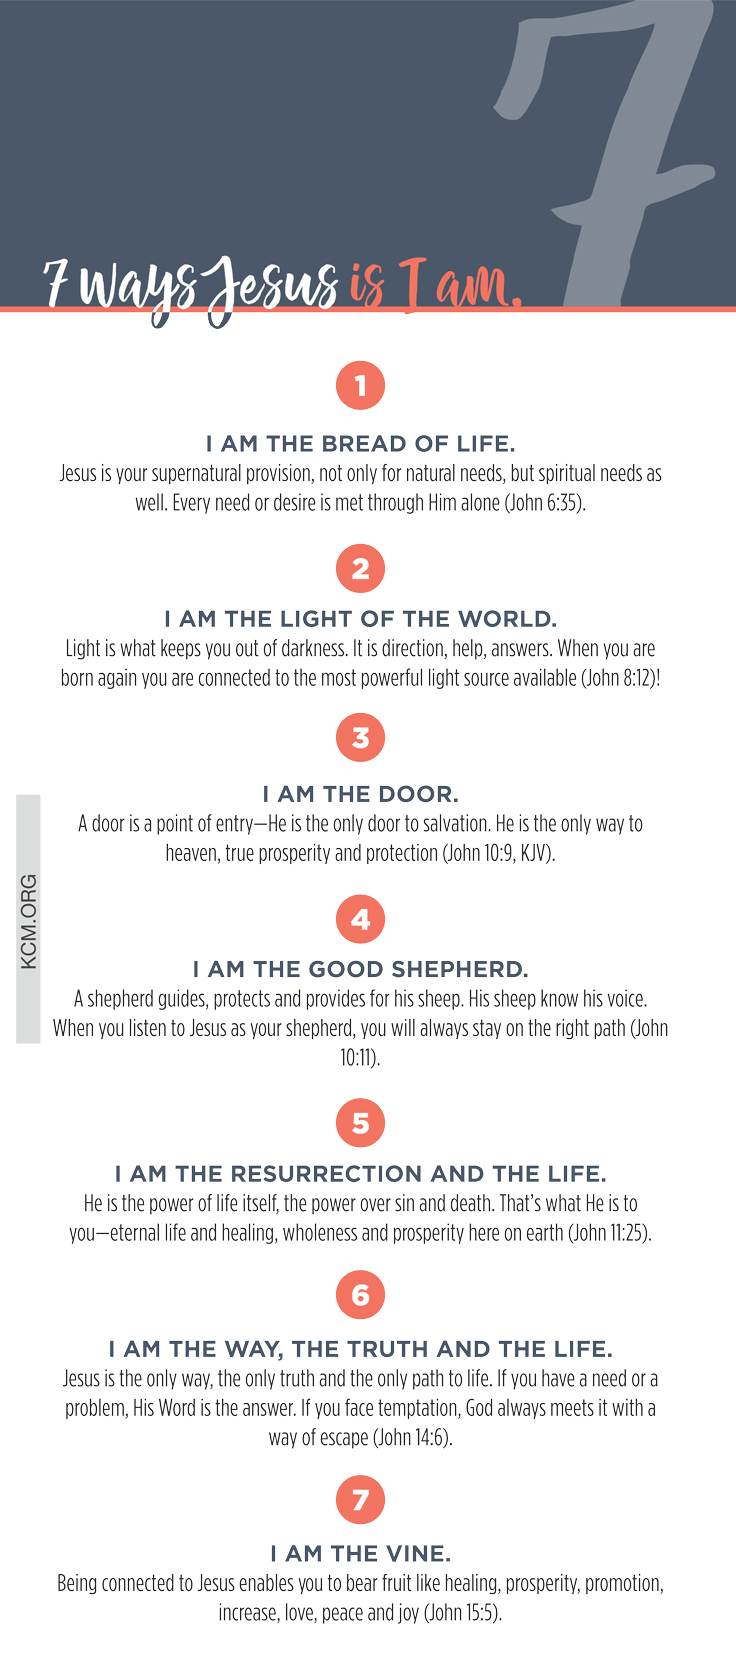 7 Ways Jesus Is I AM